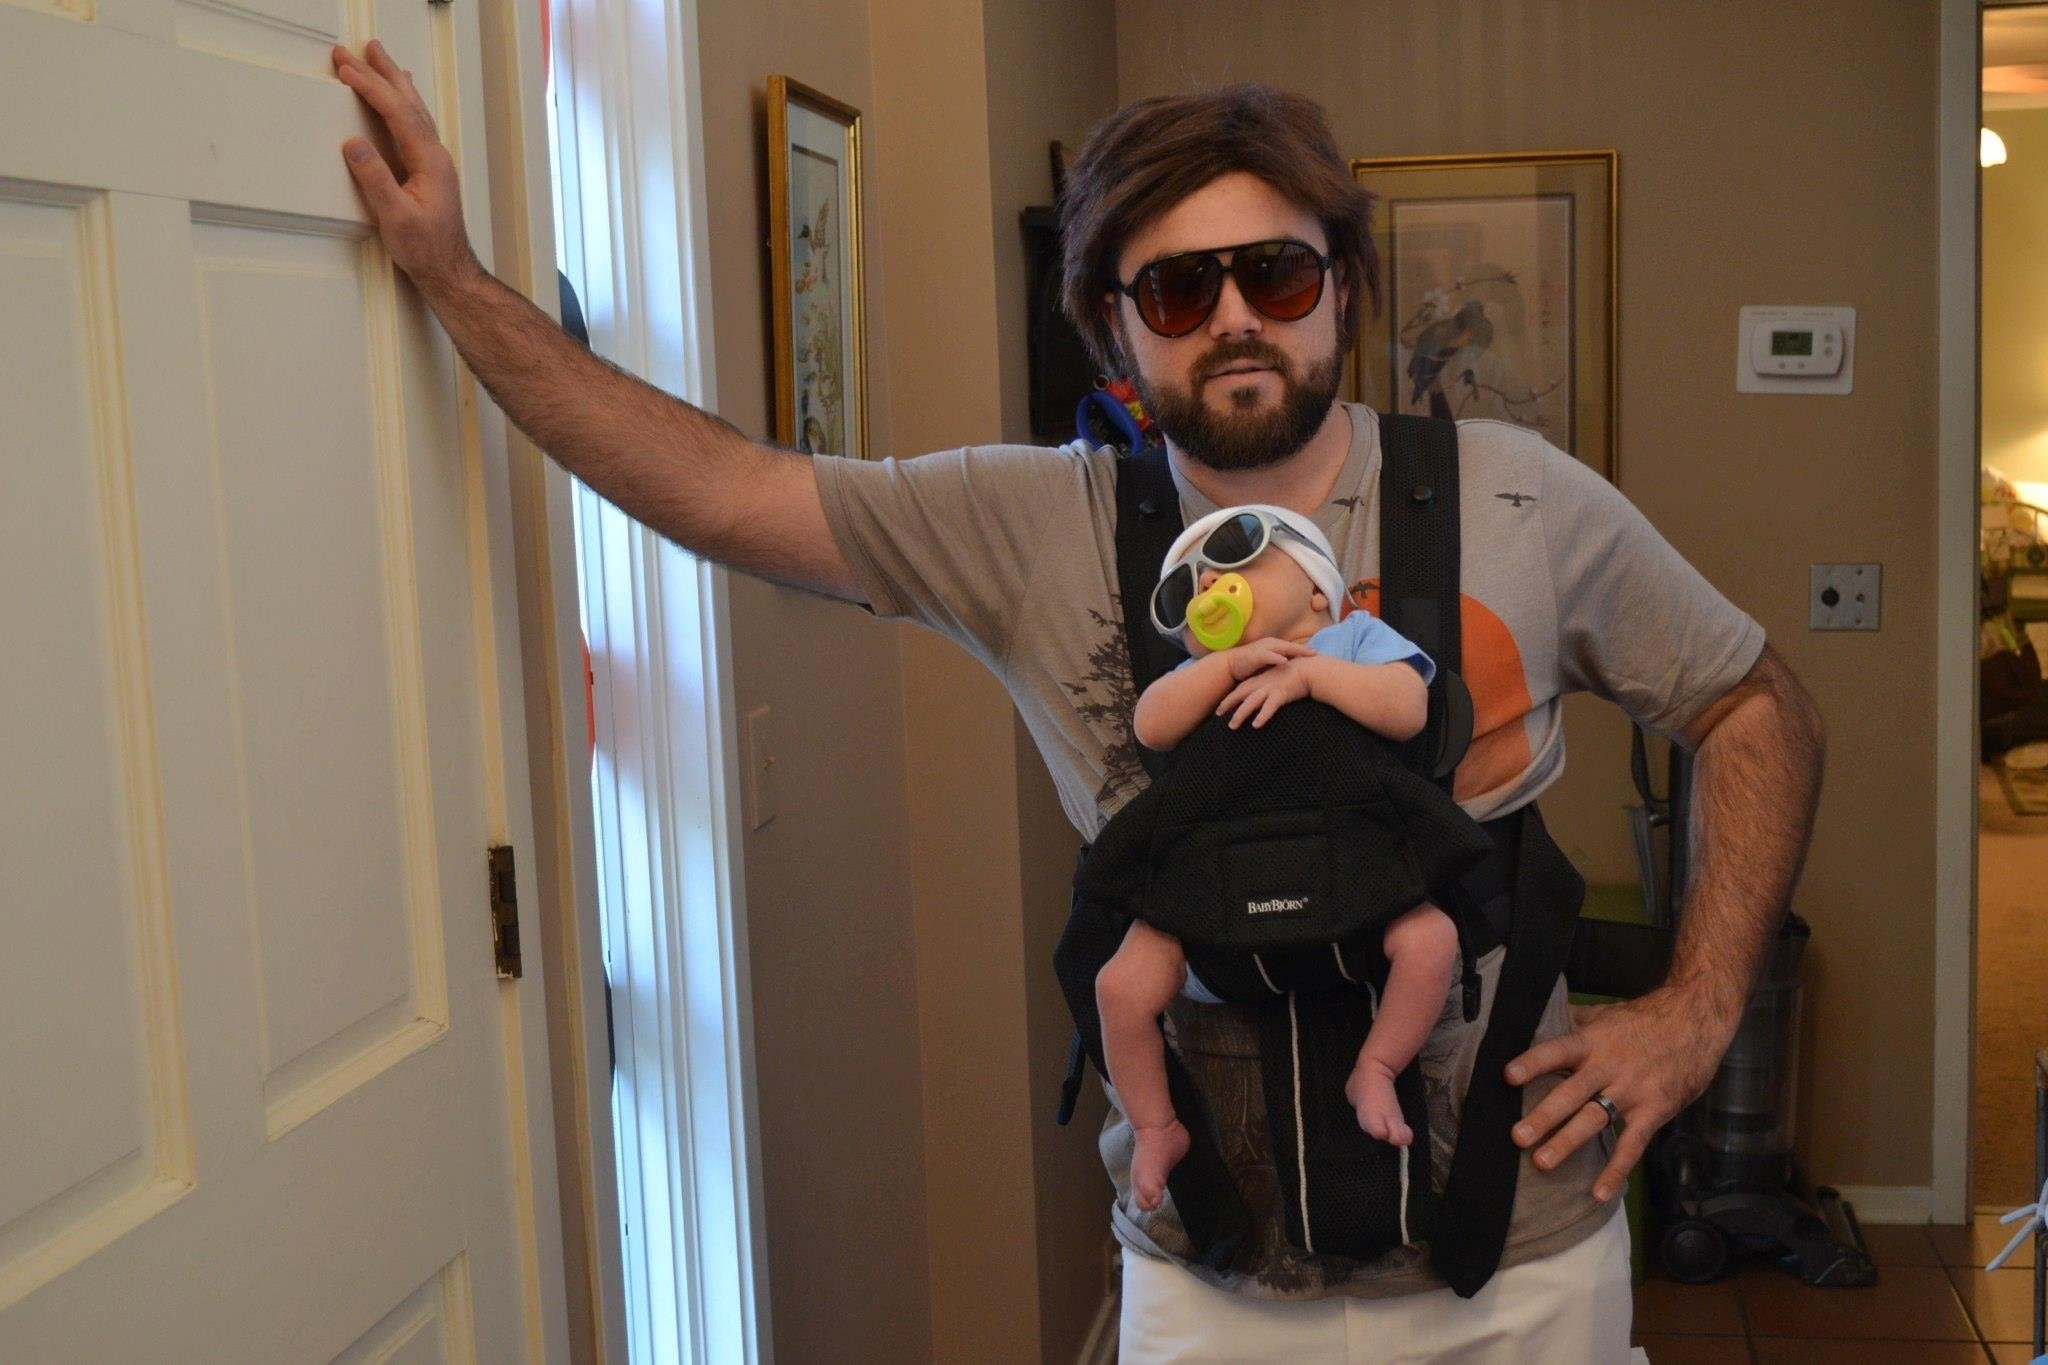 10 Lovely Costume Ideas For Bearded Men newborn baby halloween costume ideas google search diy baby girl 1 2021